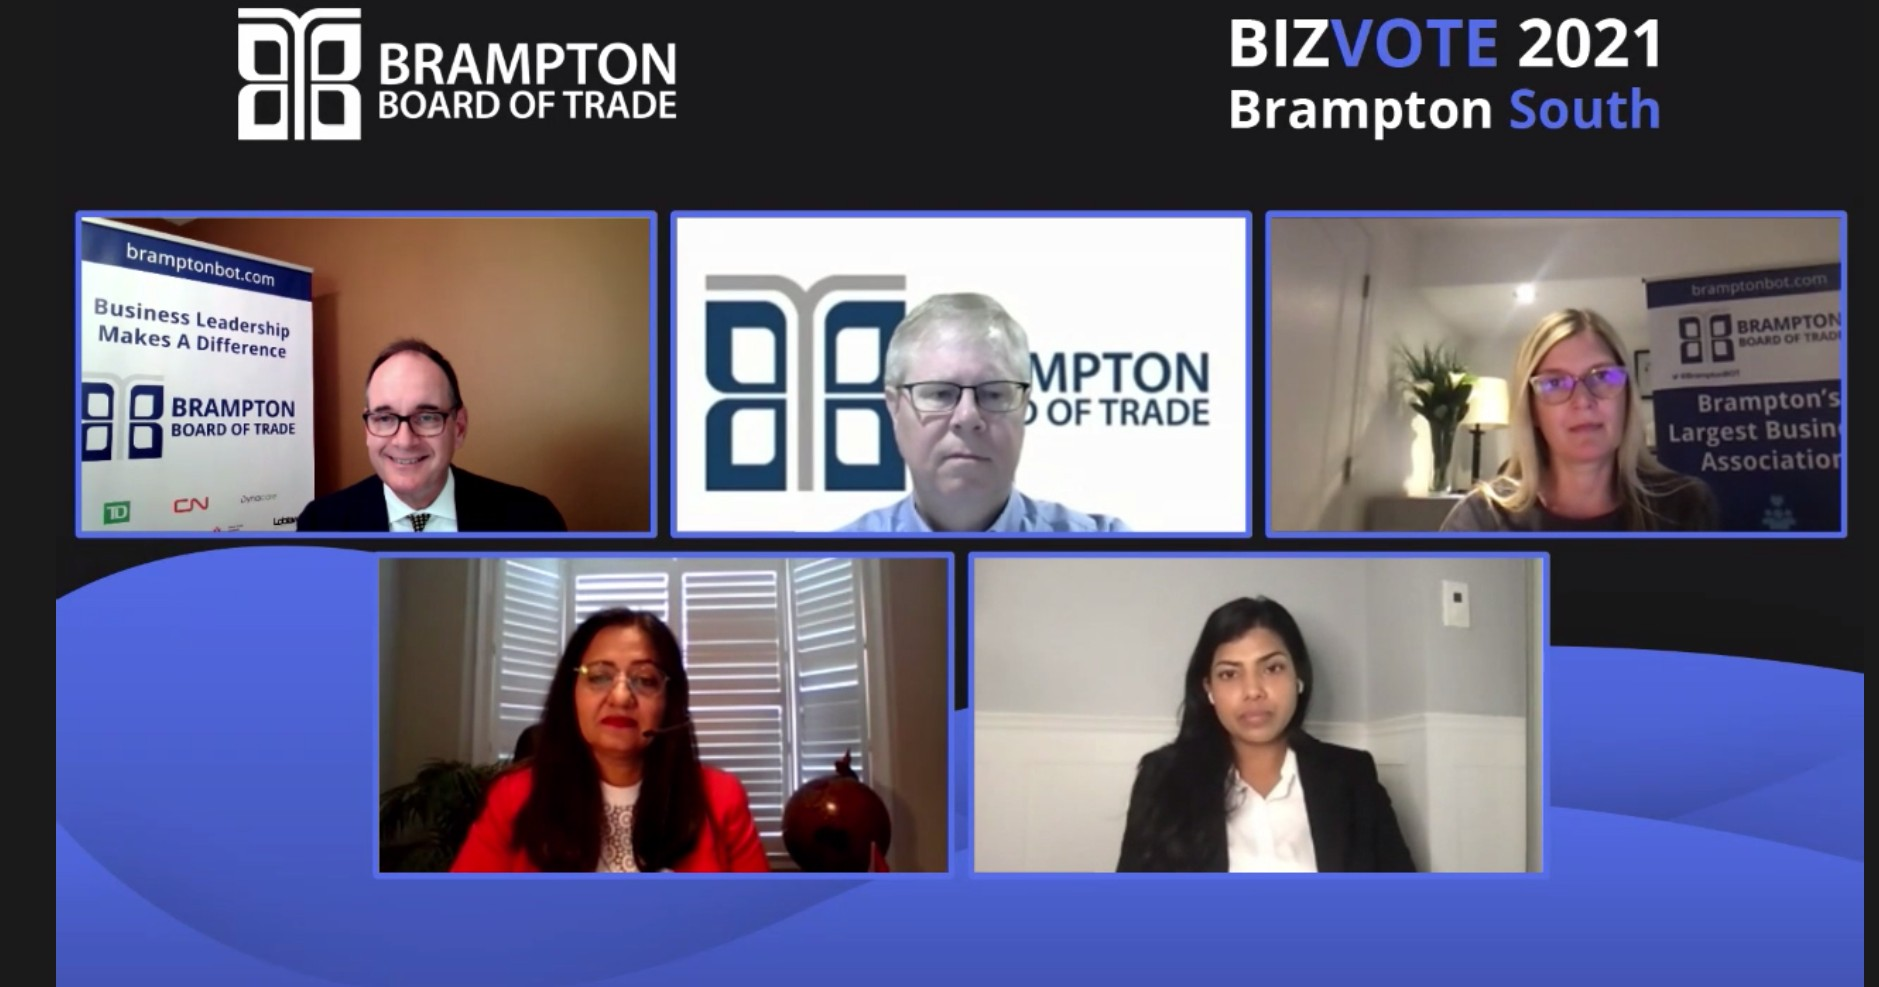 Liberal incumbents participate in Brampton Board of Trade debate, many NDP, Green and CPC candidates decline